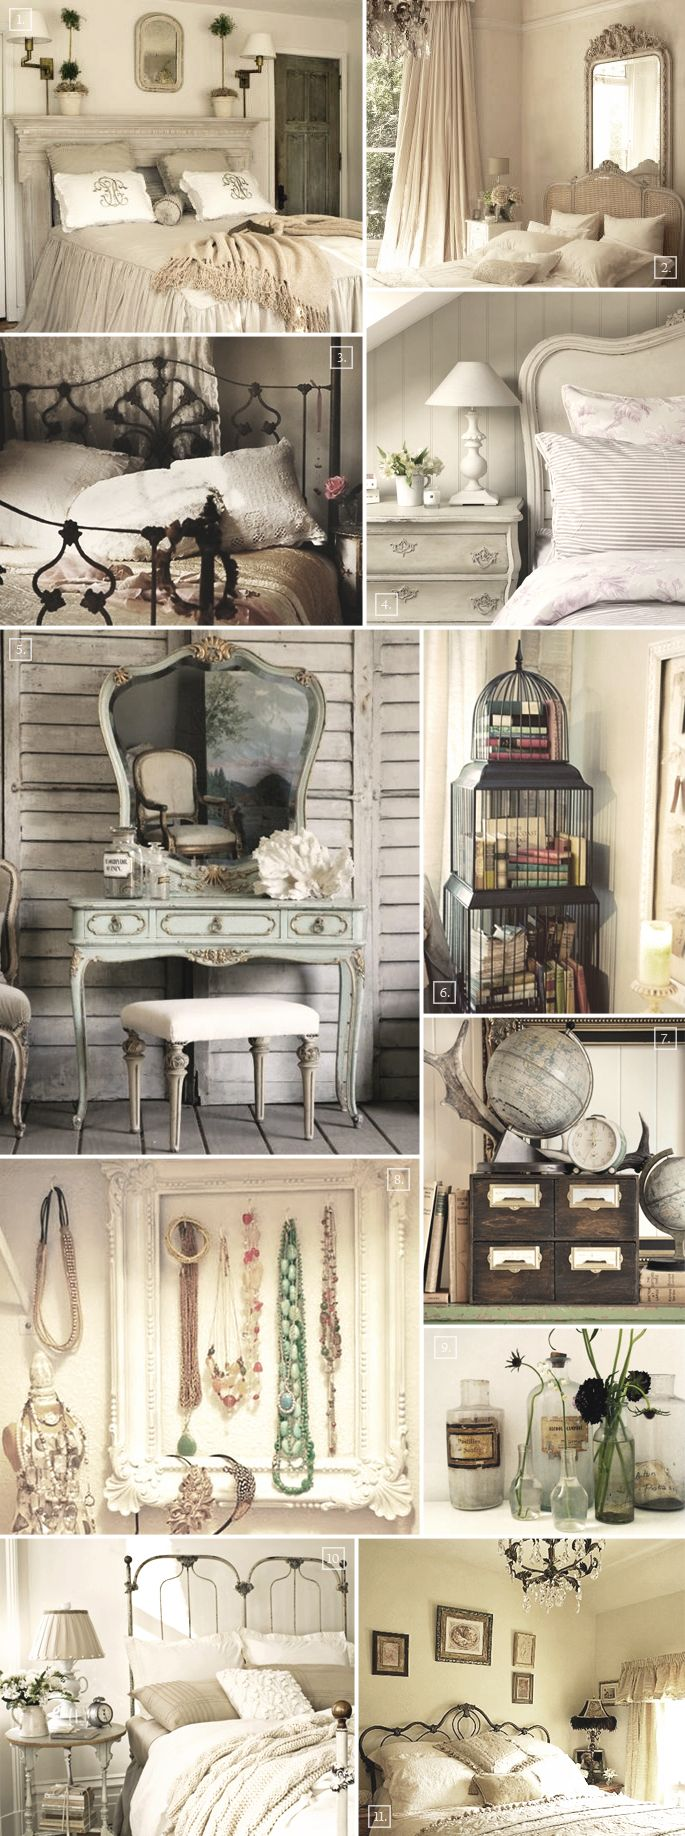 Vintage Bedroom Decor Accessories and Ideas | For the Home ...